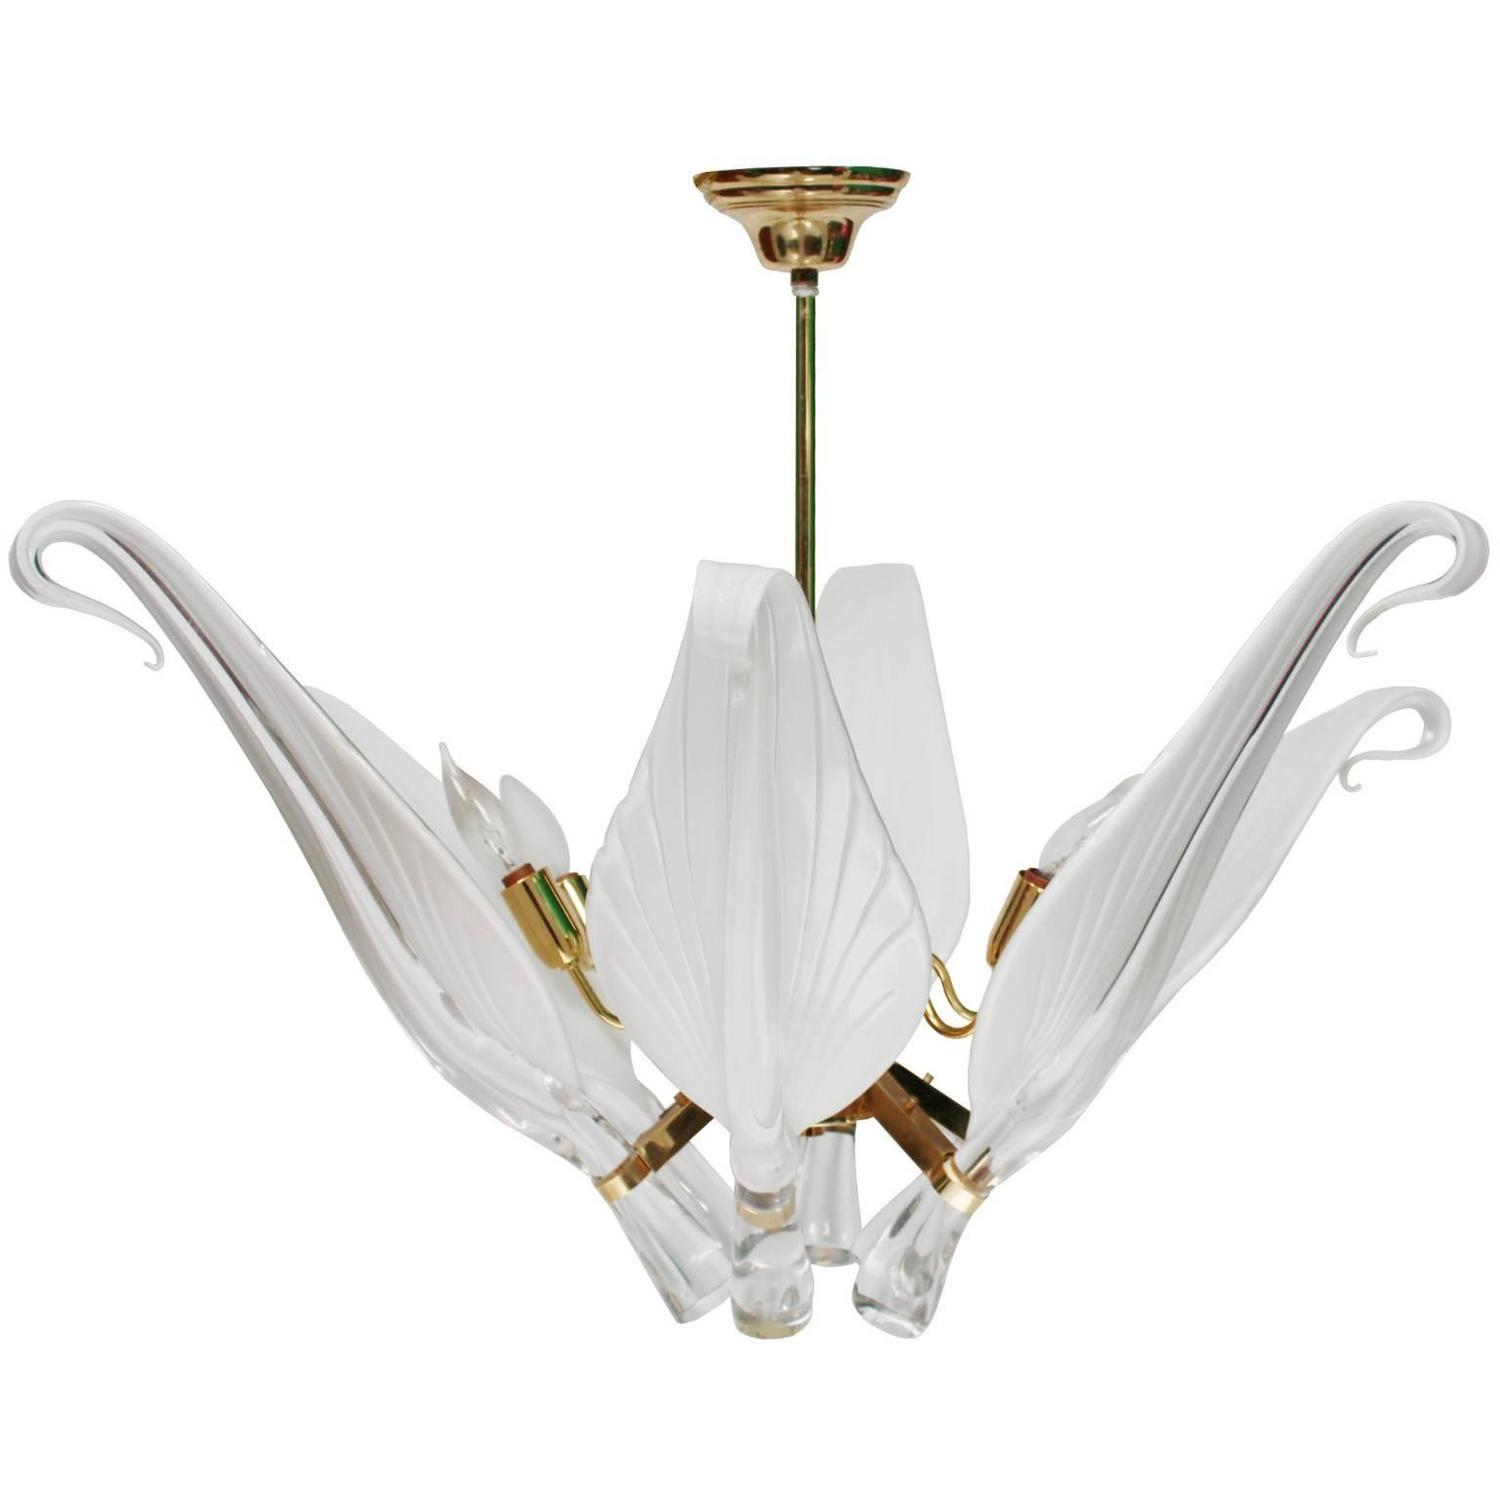 Franco luce six light chandelier with curled murano glass leaves for franco luce six light chandelier with curled murano glass leaves for sale at 1stdibs arubaitofo Choice Image